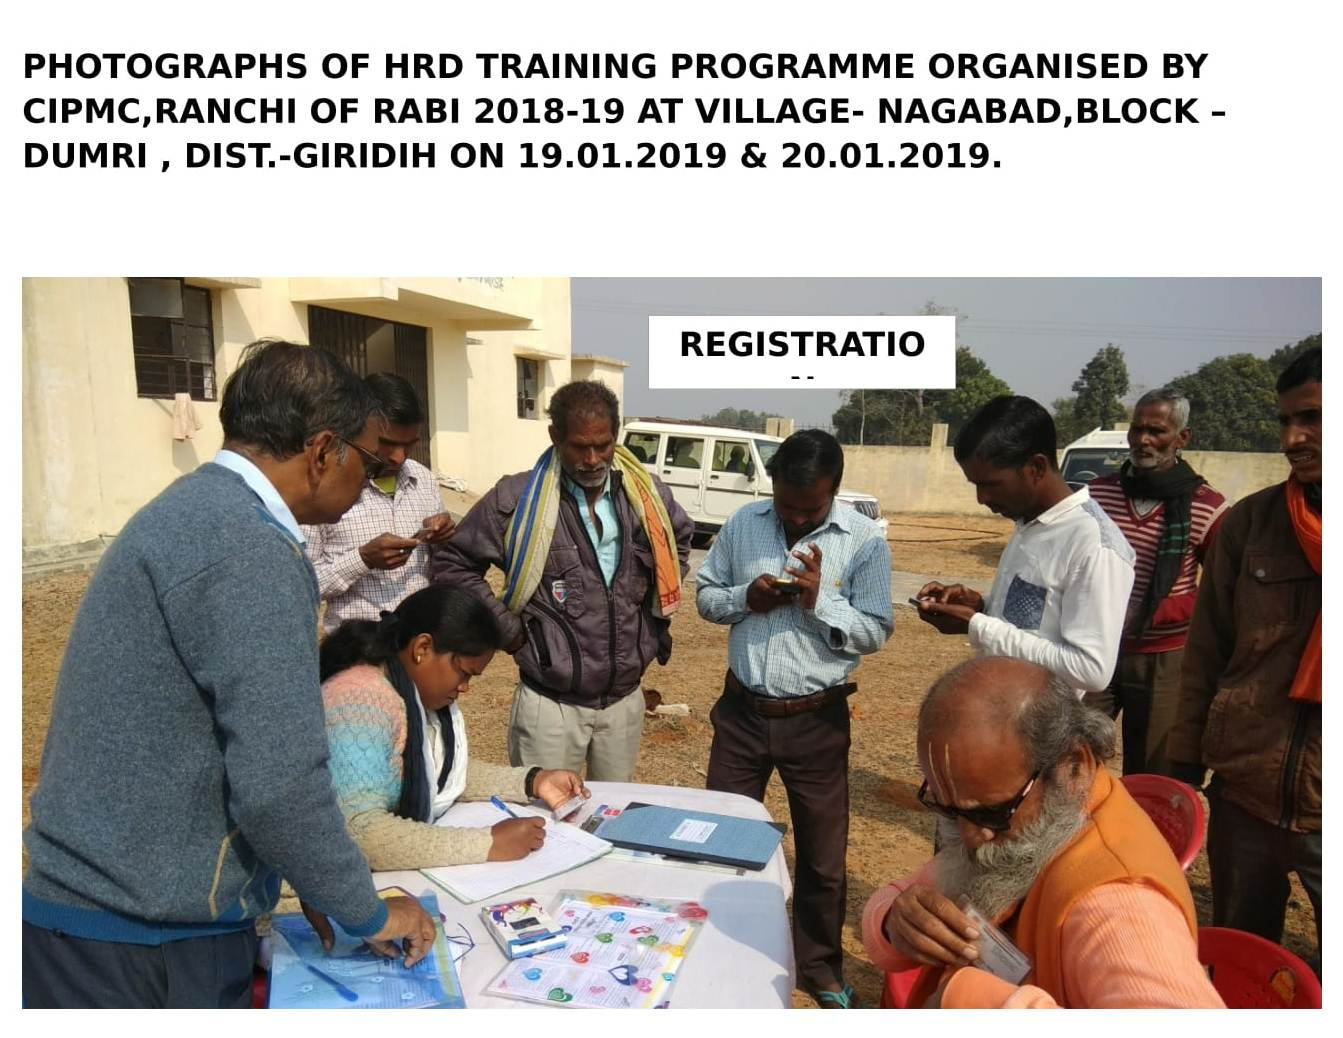 HRD REGISTRATION